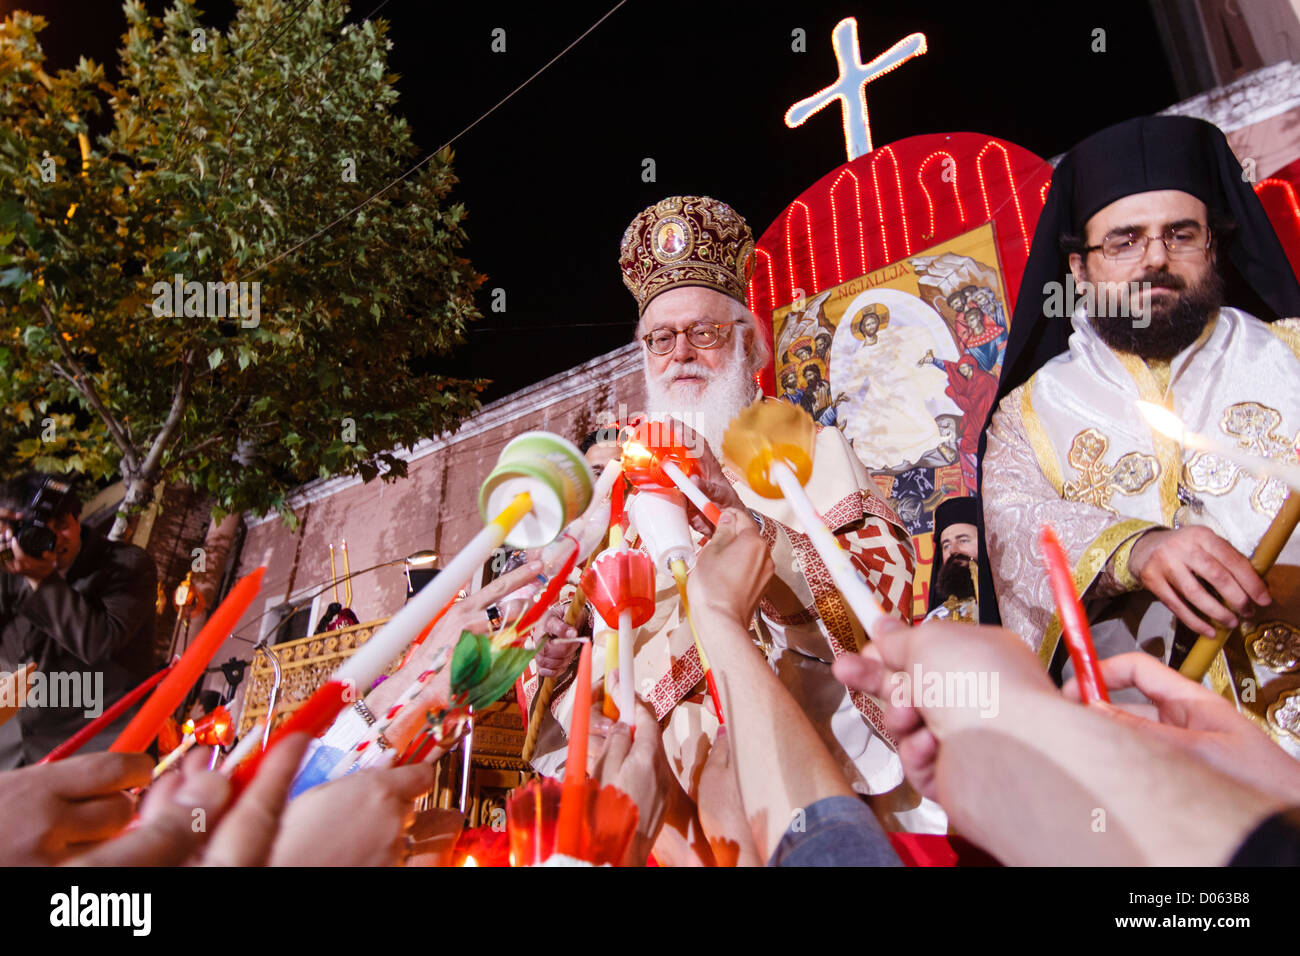 The Orthodox Patriarch attending the Easter ceremonies at Tirana, Albania - Stock Image